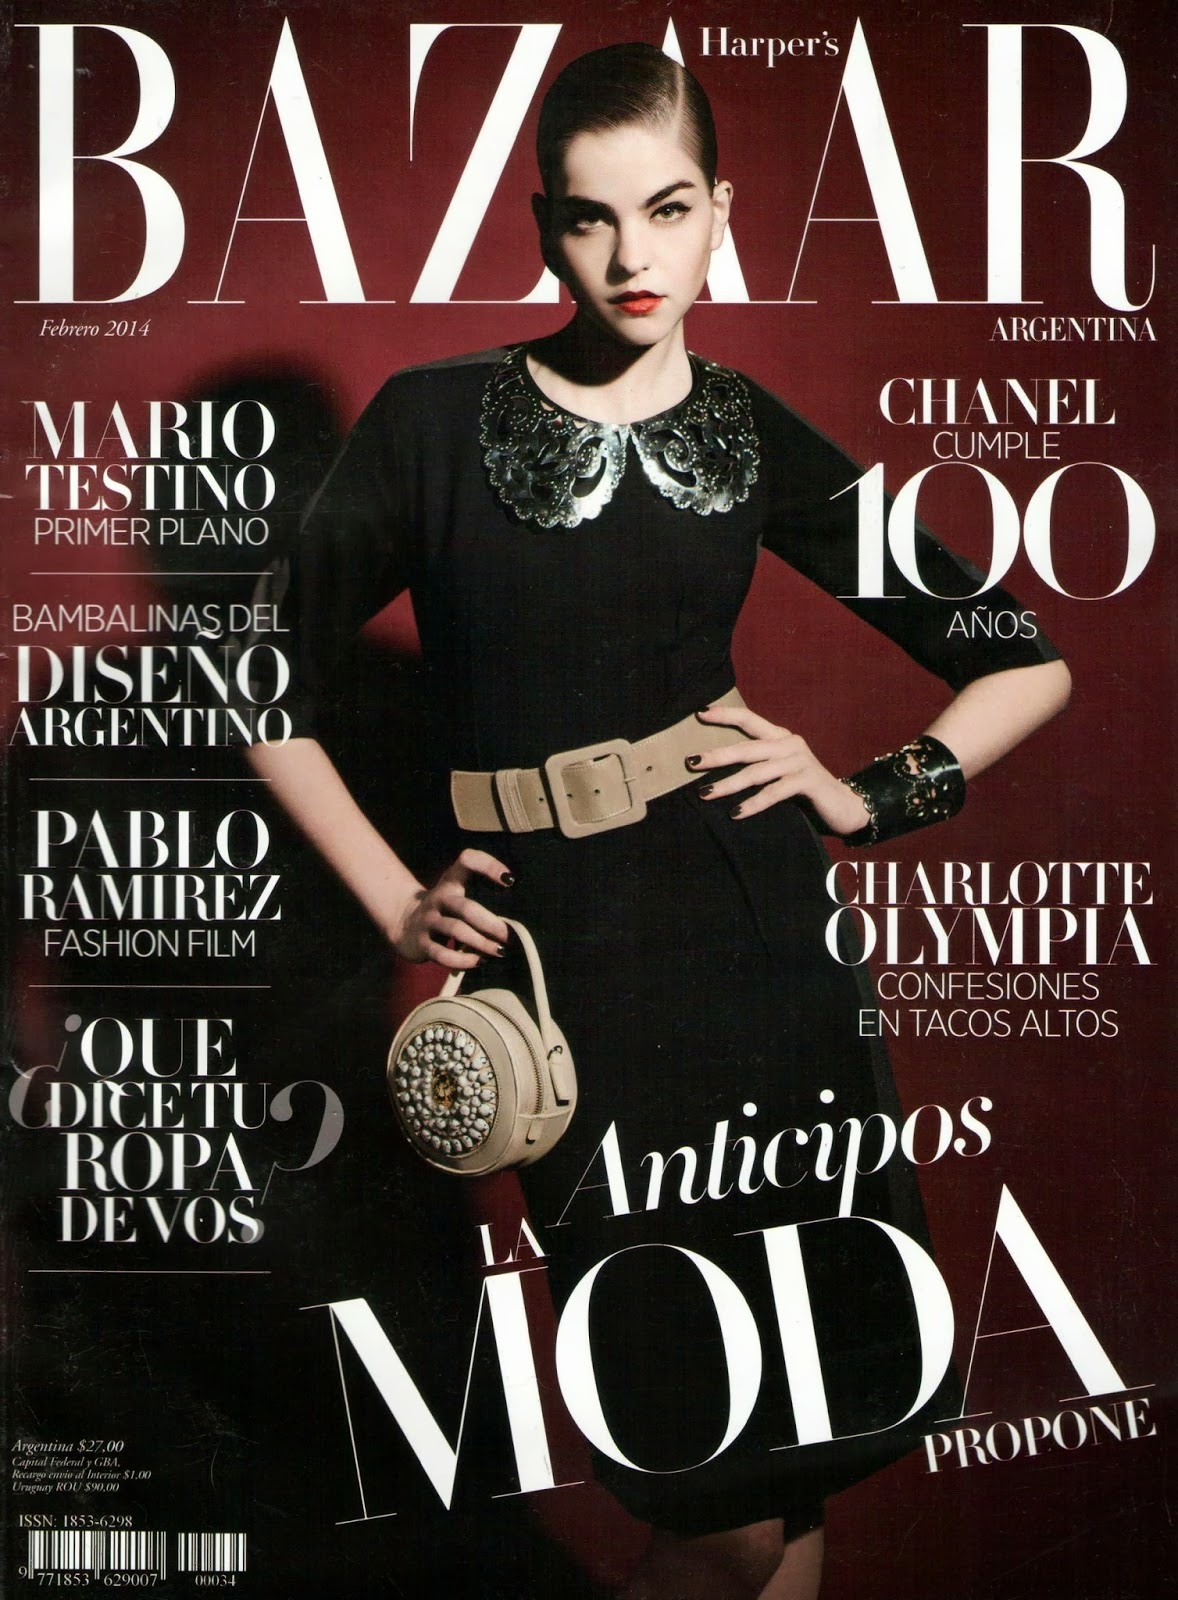 Valerianne Le Moi HQ Pictures Harper's Bazaar Argentina Magazine Cover February 2014